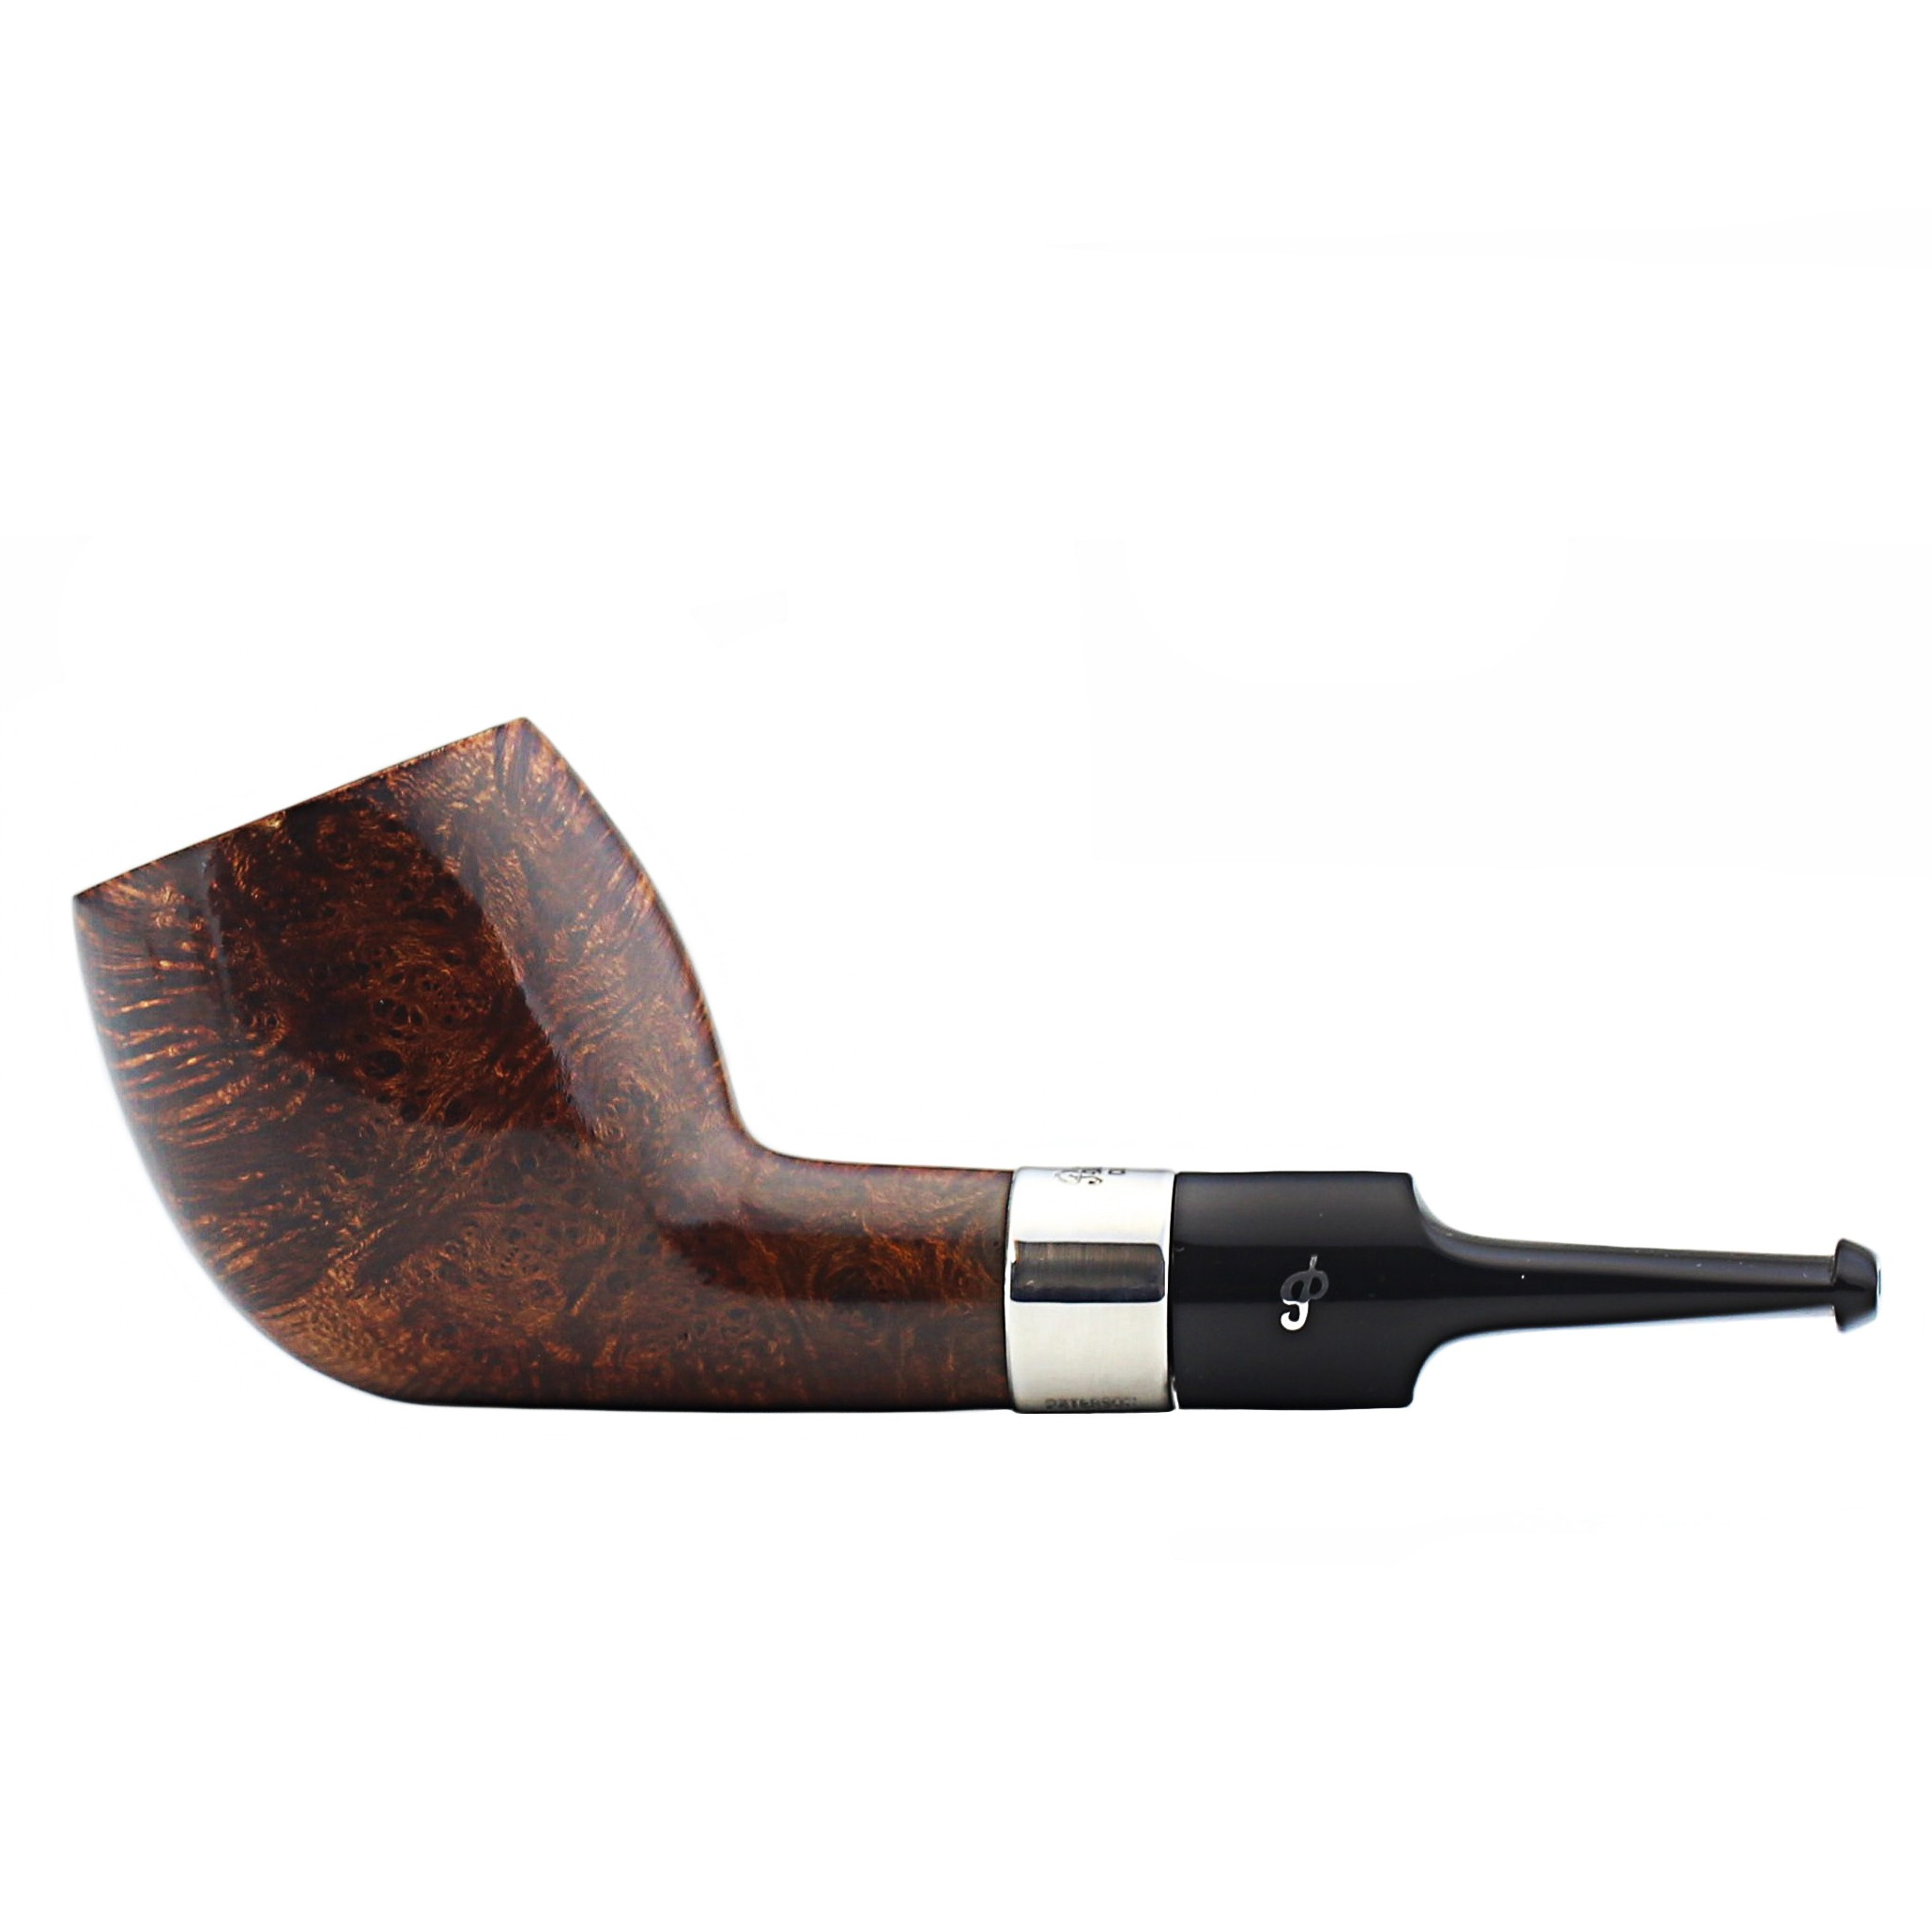 straight stem with 2017 collection carved billiard bowl FALCON standard pipe UK